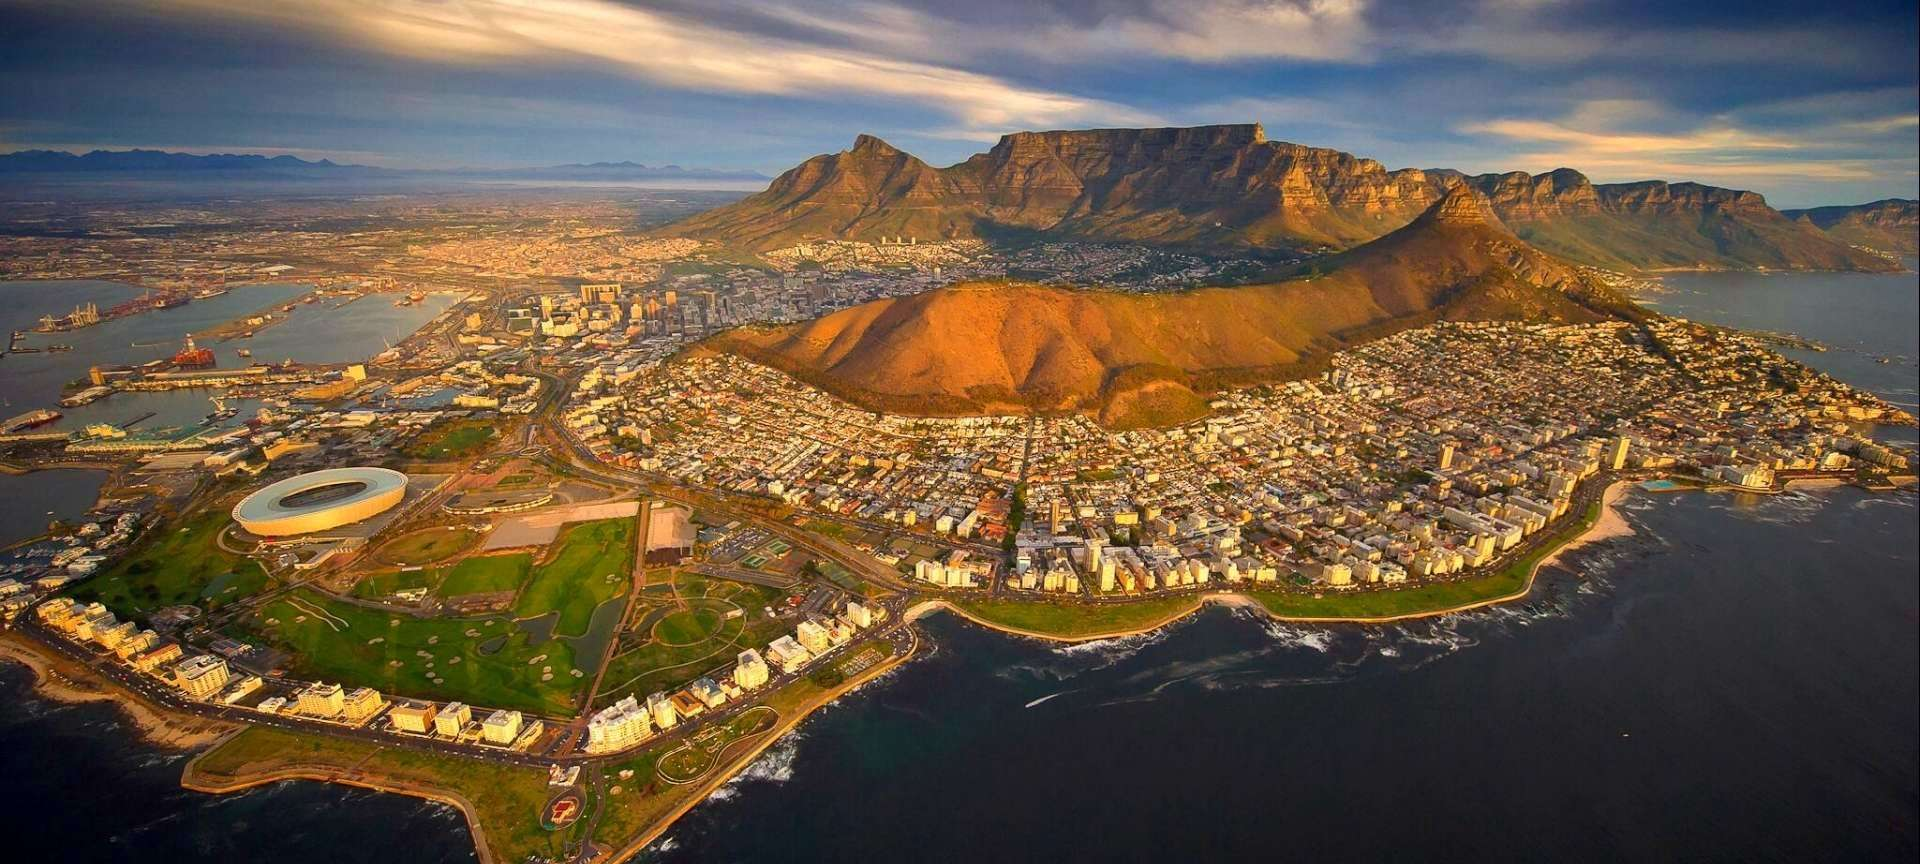 come visit south africa South africa's twin coastlines extend for more than 1,600 miles/ 2,500 kilometers and offer an unlimited array of activities the best time to visit depends mostly on what you want to do if sunbathing is your top priority, then summer (november to january) is undoubtedly the hottest time of year.